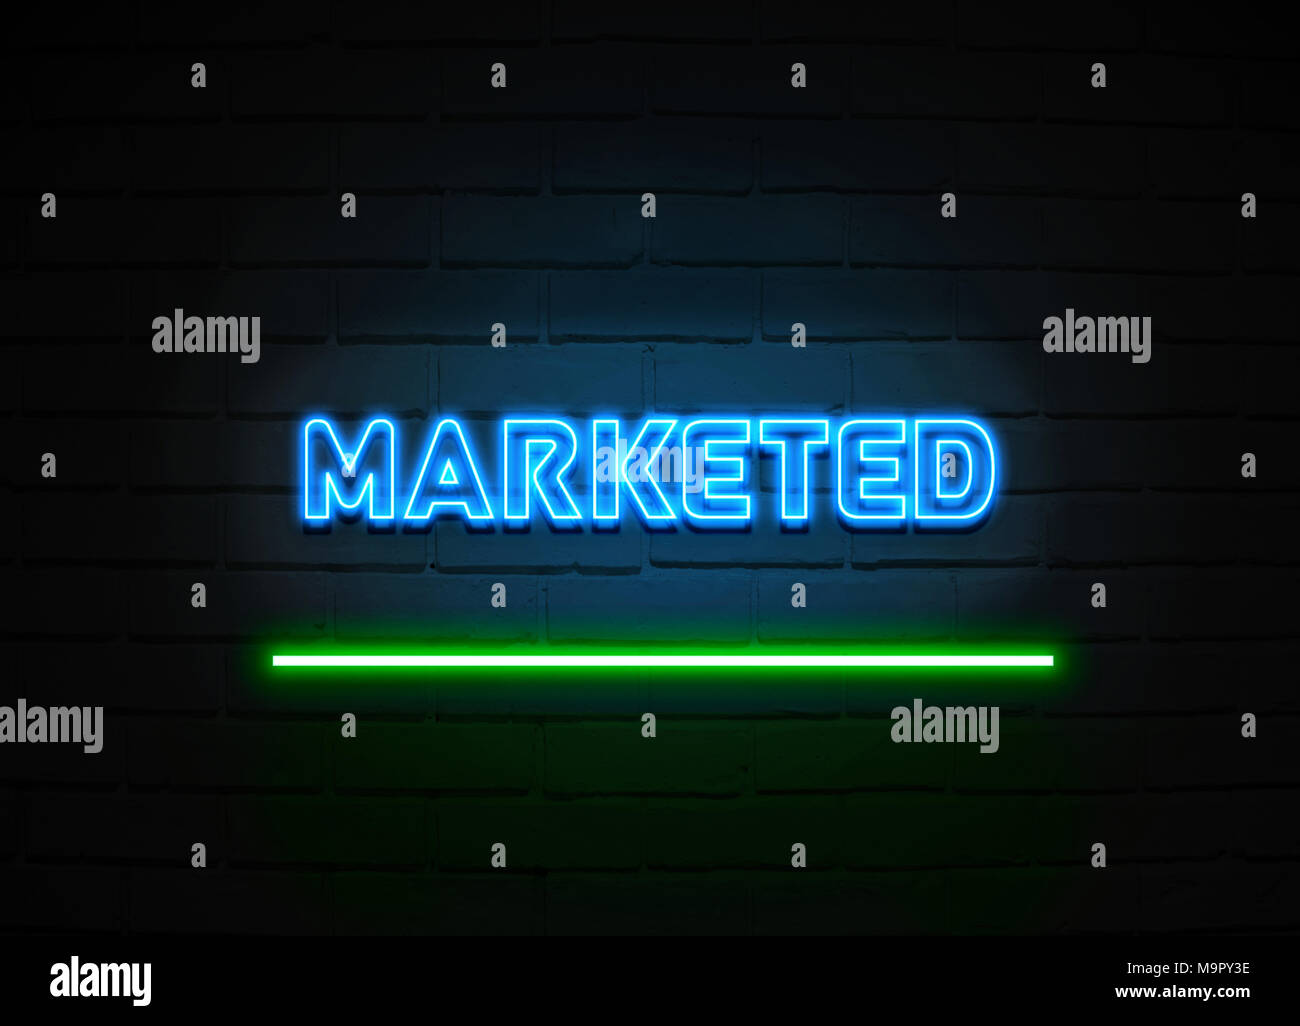 Marketed neon sign - Glowing Neon Sign on brickwall wall - 3D rendered royalty free stock illustration. - Stock Image